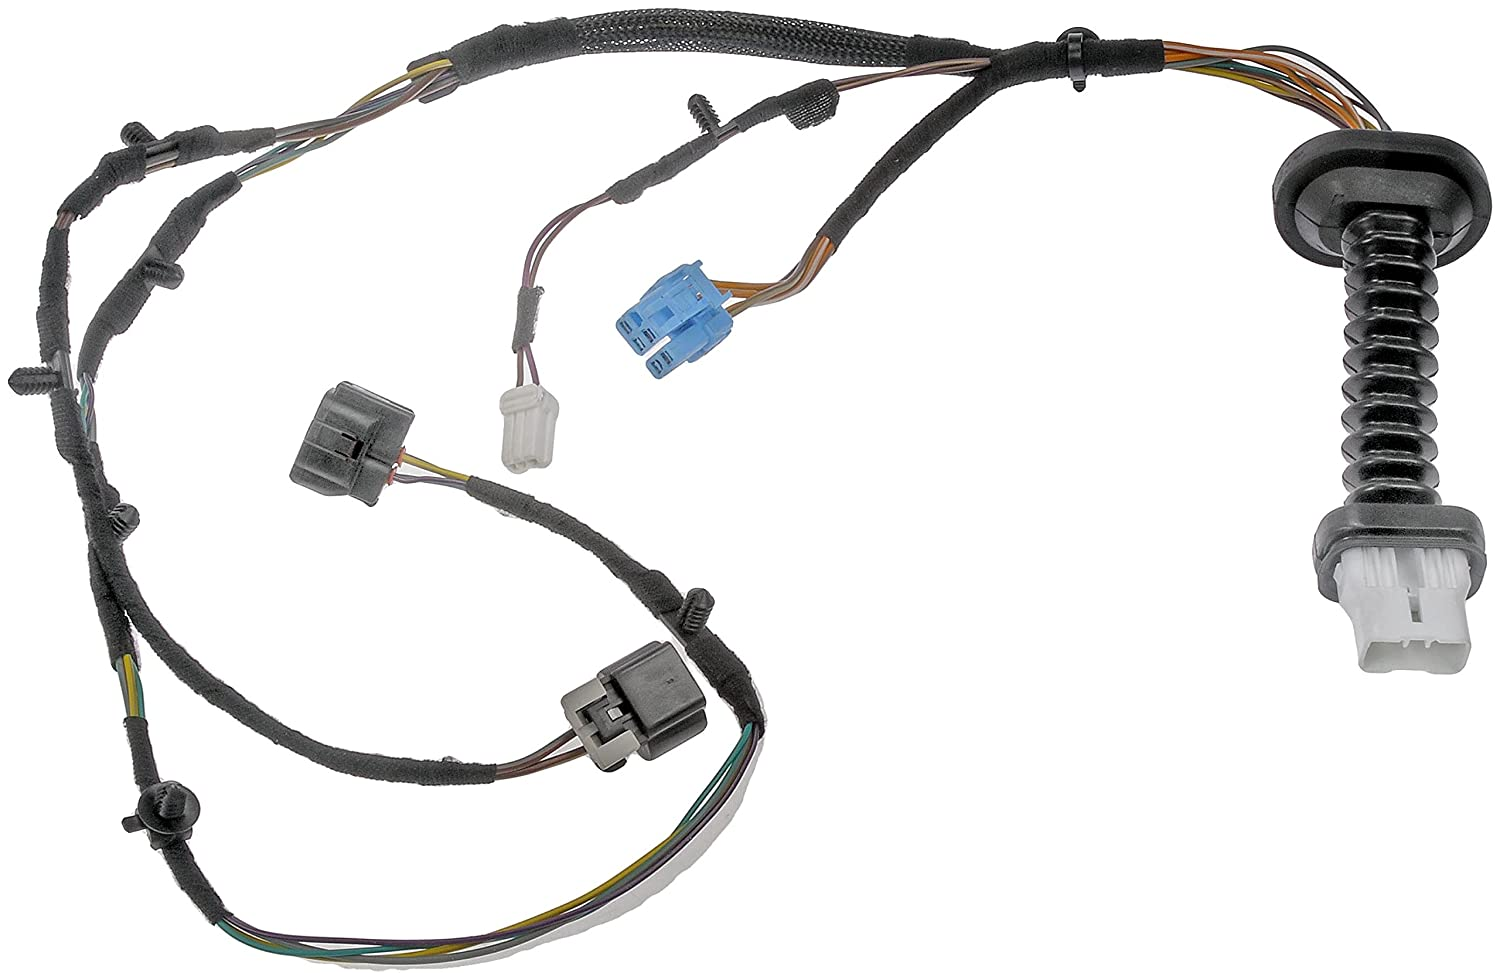 81c1LCEp7lL._SL1500_ amazon com dorman 645 506 door harness with connectors automotive Dodge Transmission Wiring Harness at reclaimingppi.co